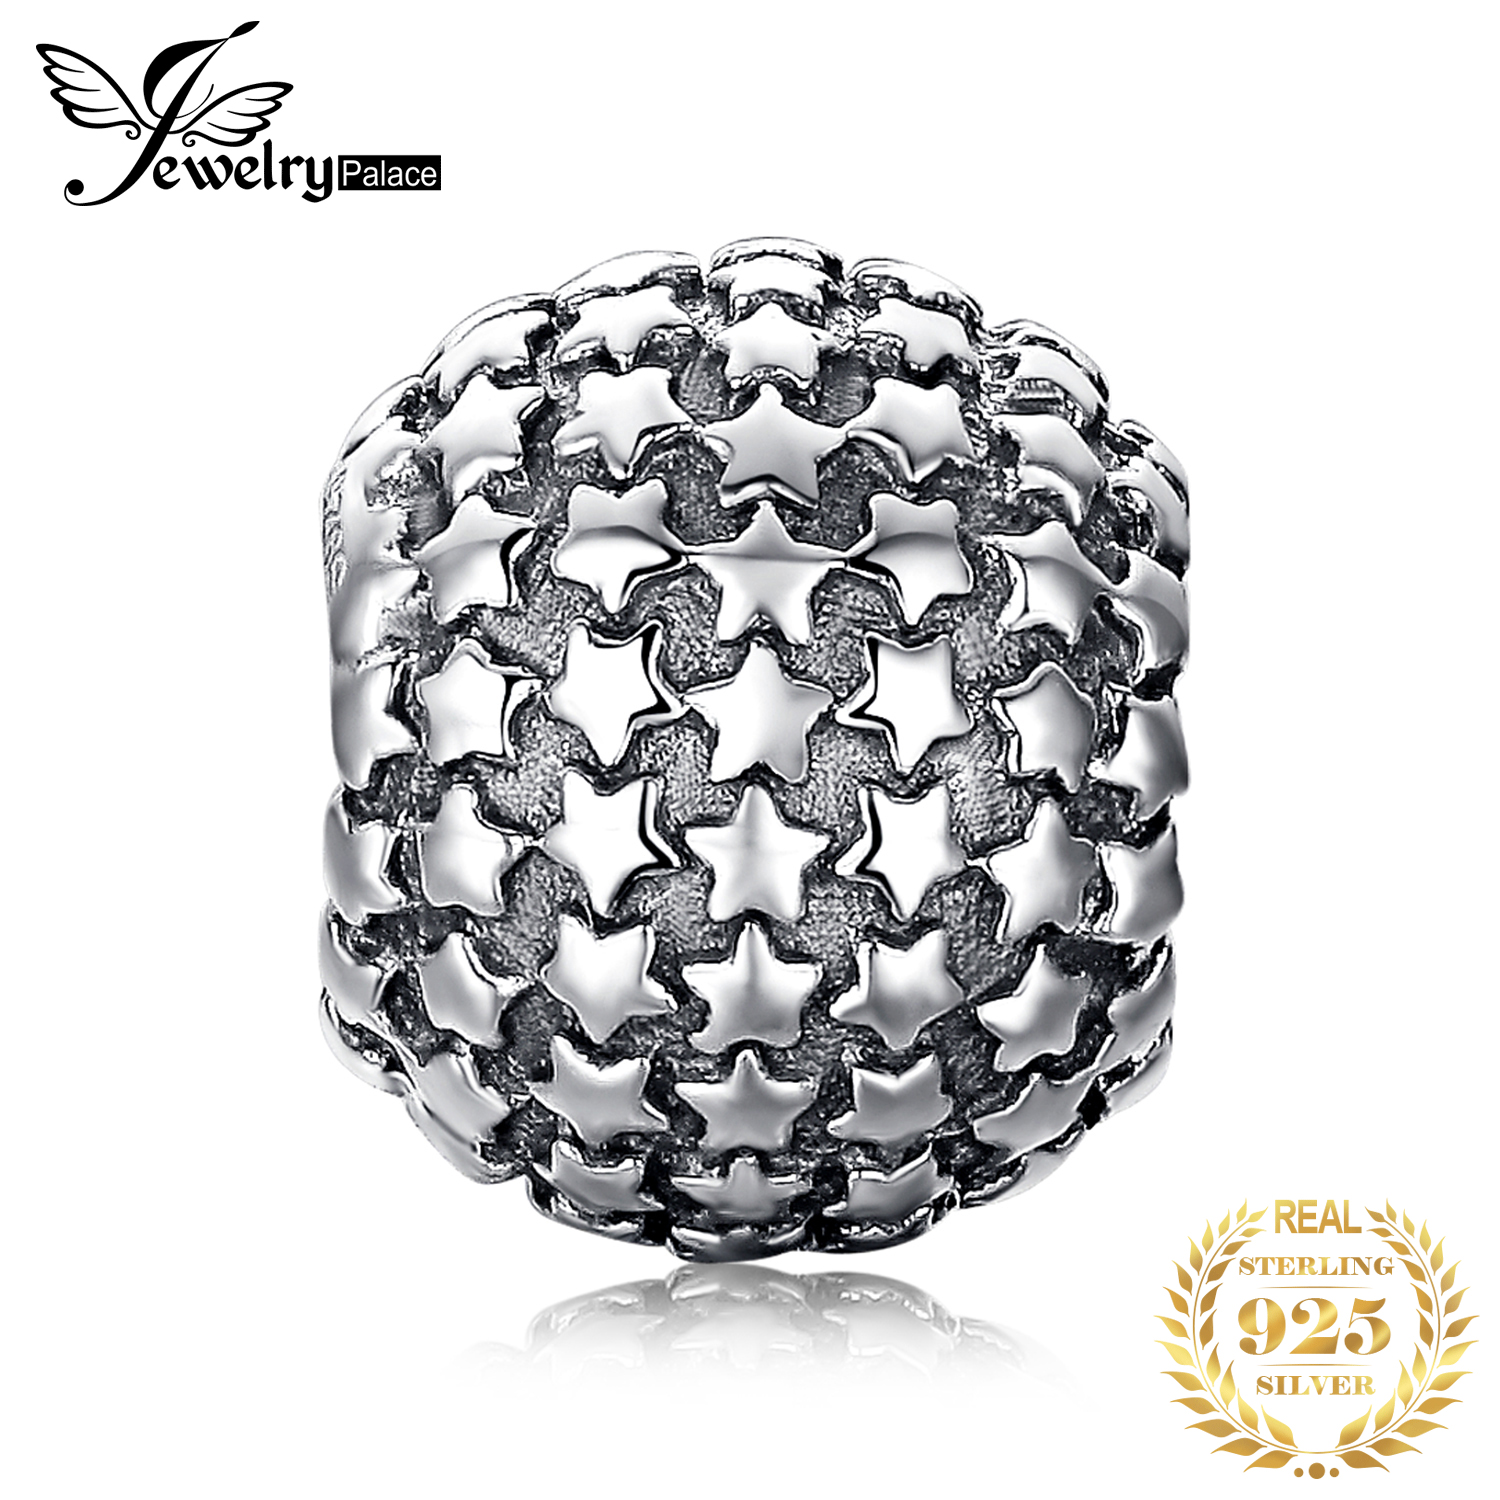 Jewelrypalace Star 925 Sterling Silver Beads Charms Silver